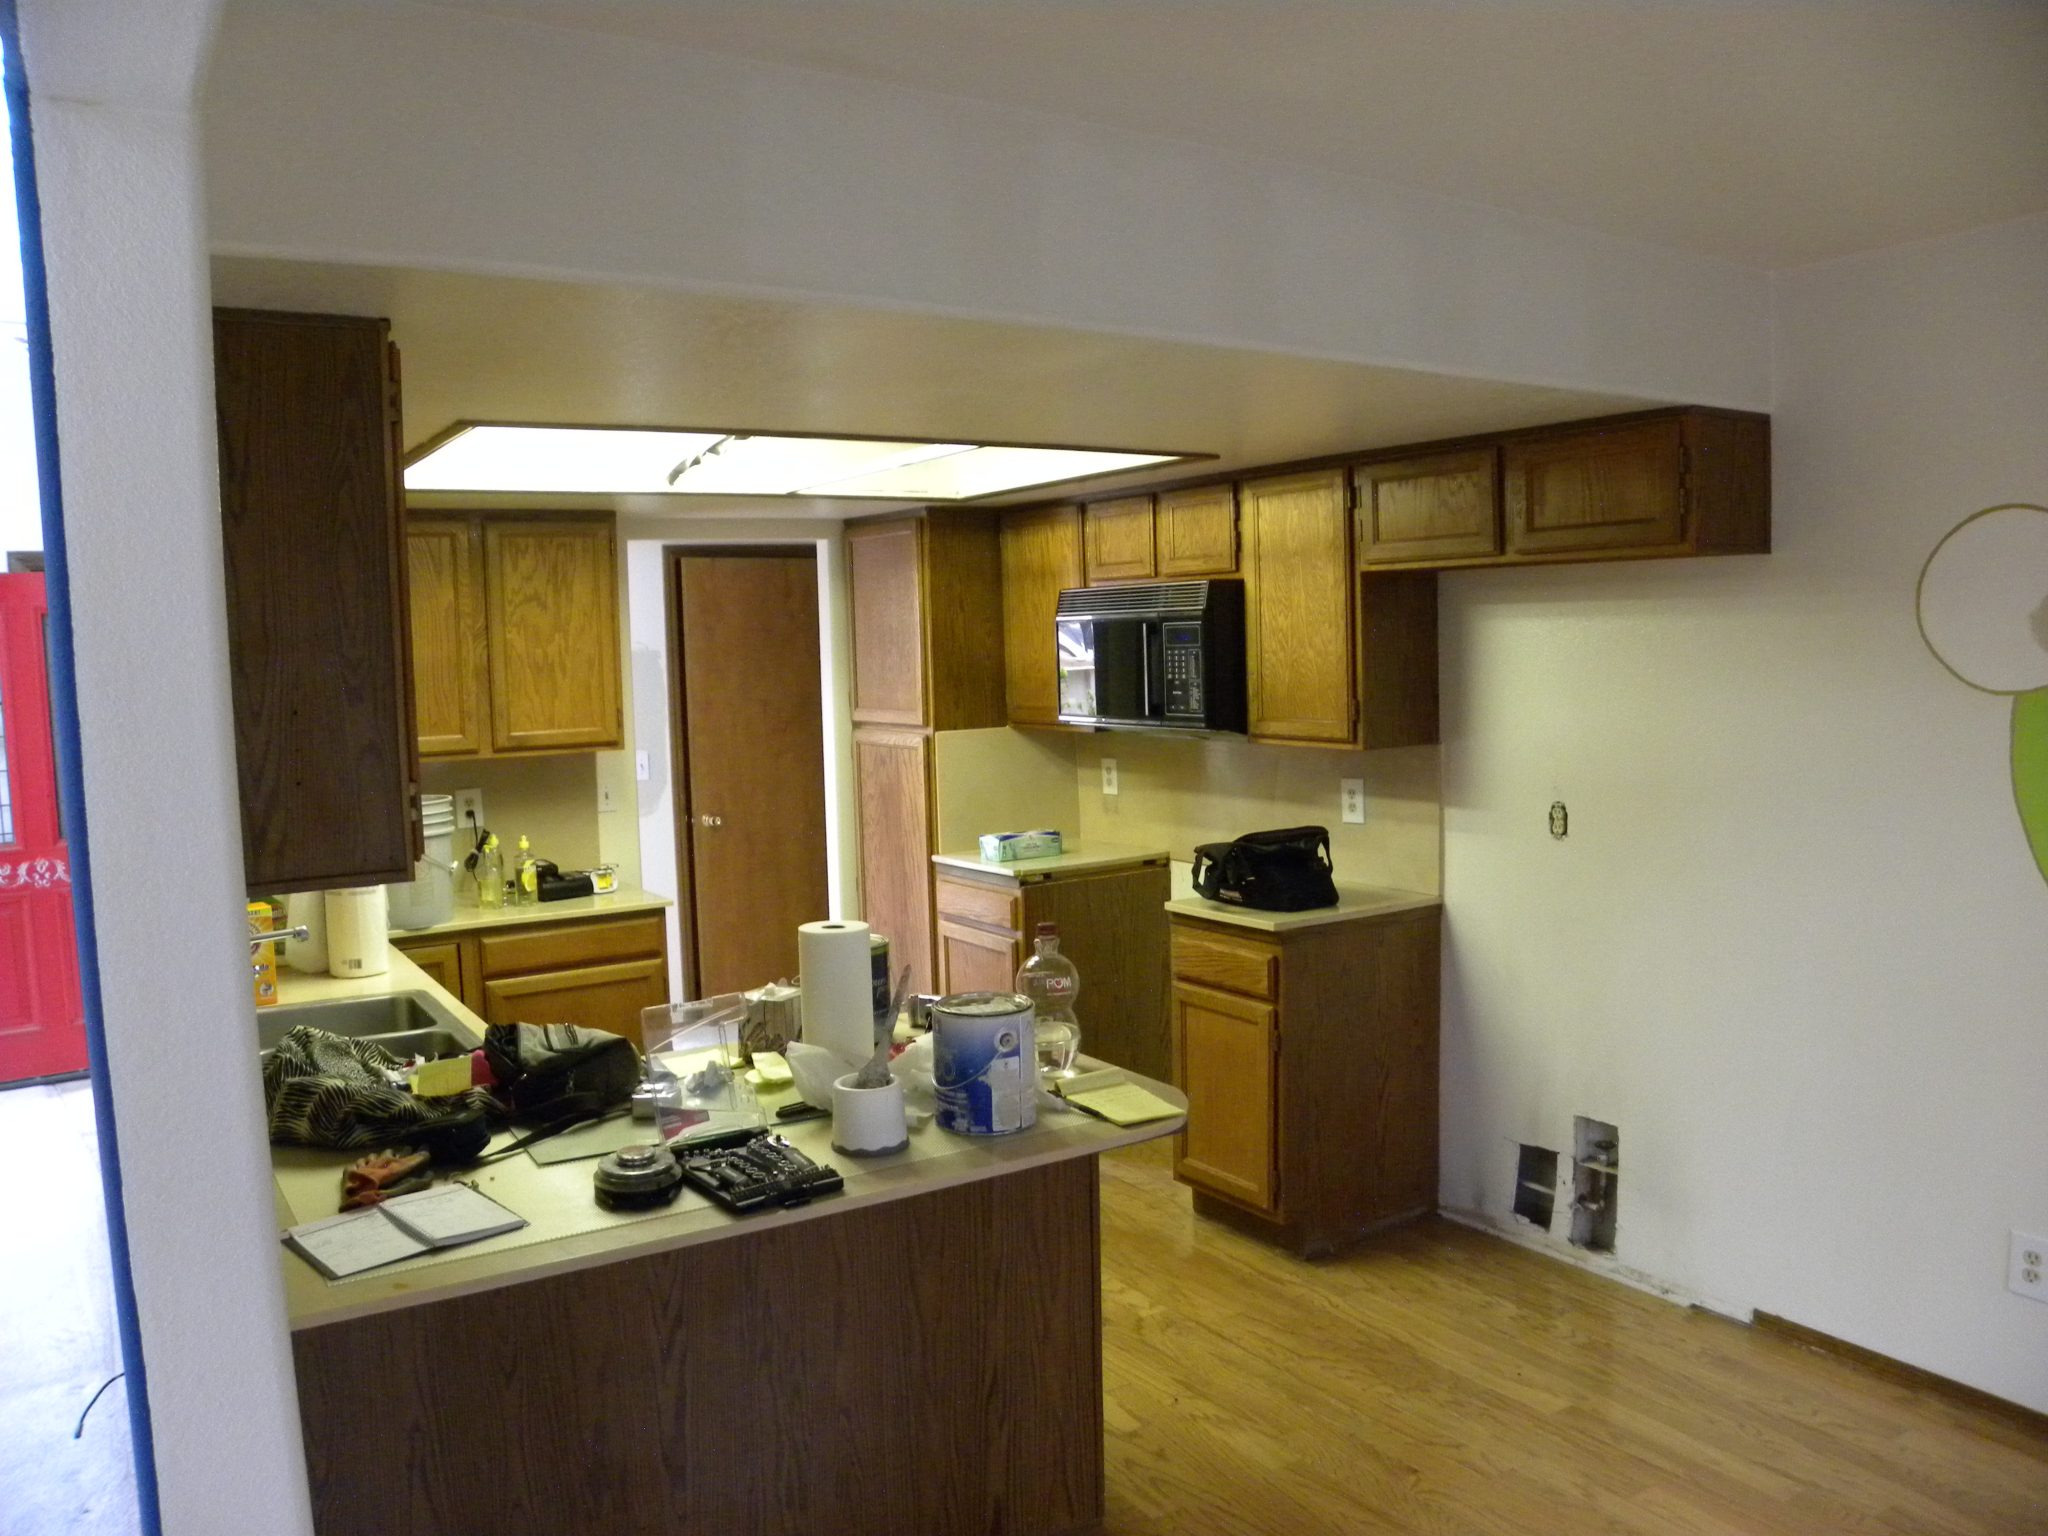 Interior shot of a residential kitchen in need of remodeling